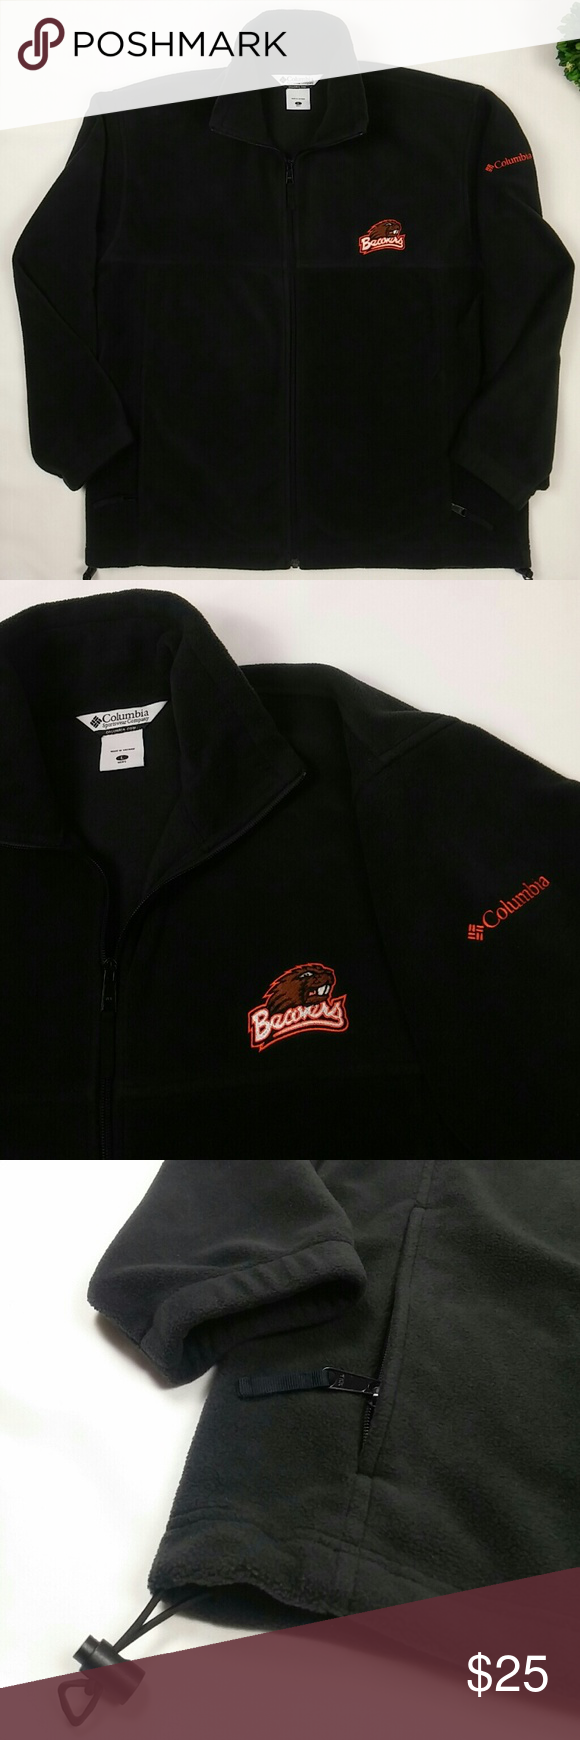 "COLUMBIA Beavers Mens fleece zip up jacket A Very warm Beavers Fan fleece zip-up jacket from Columbia. In excellent condition.  Armpit to armpit laying flat 25"" Length 27.5"" Columbia Sweaters Zip Up"